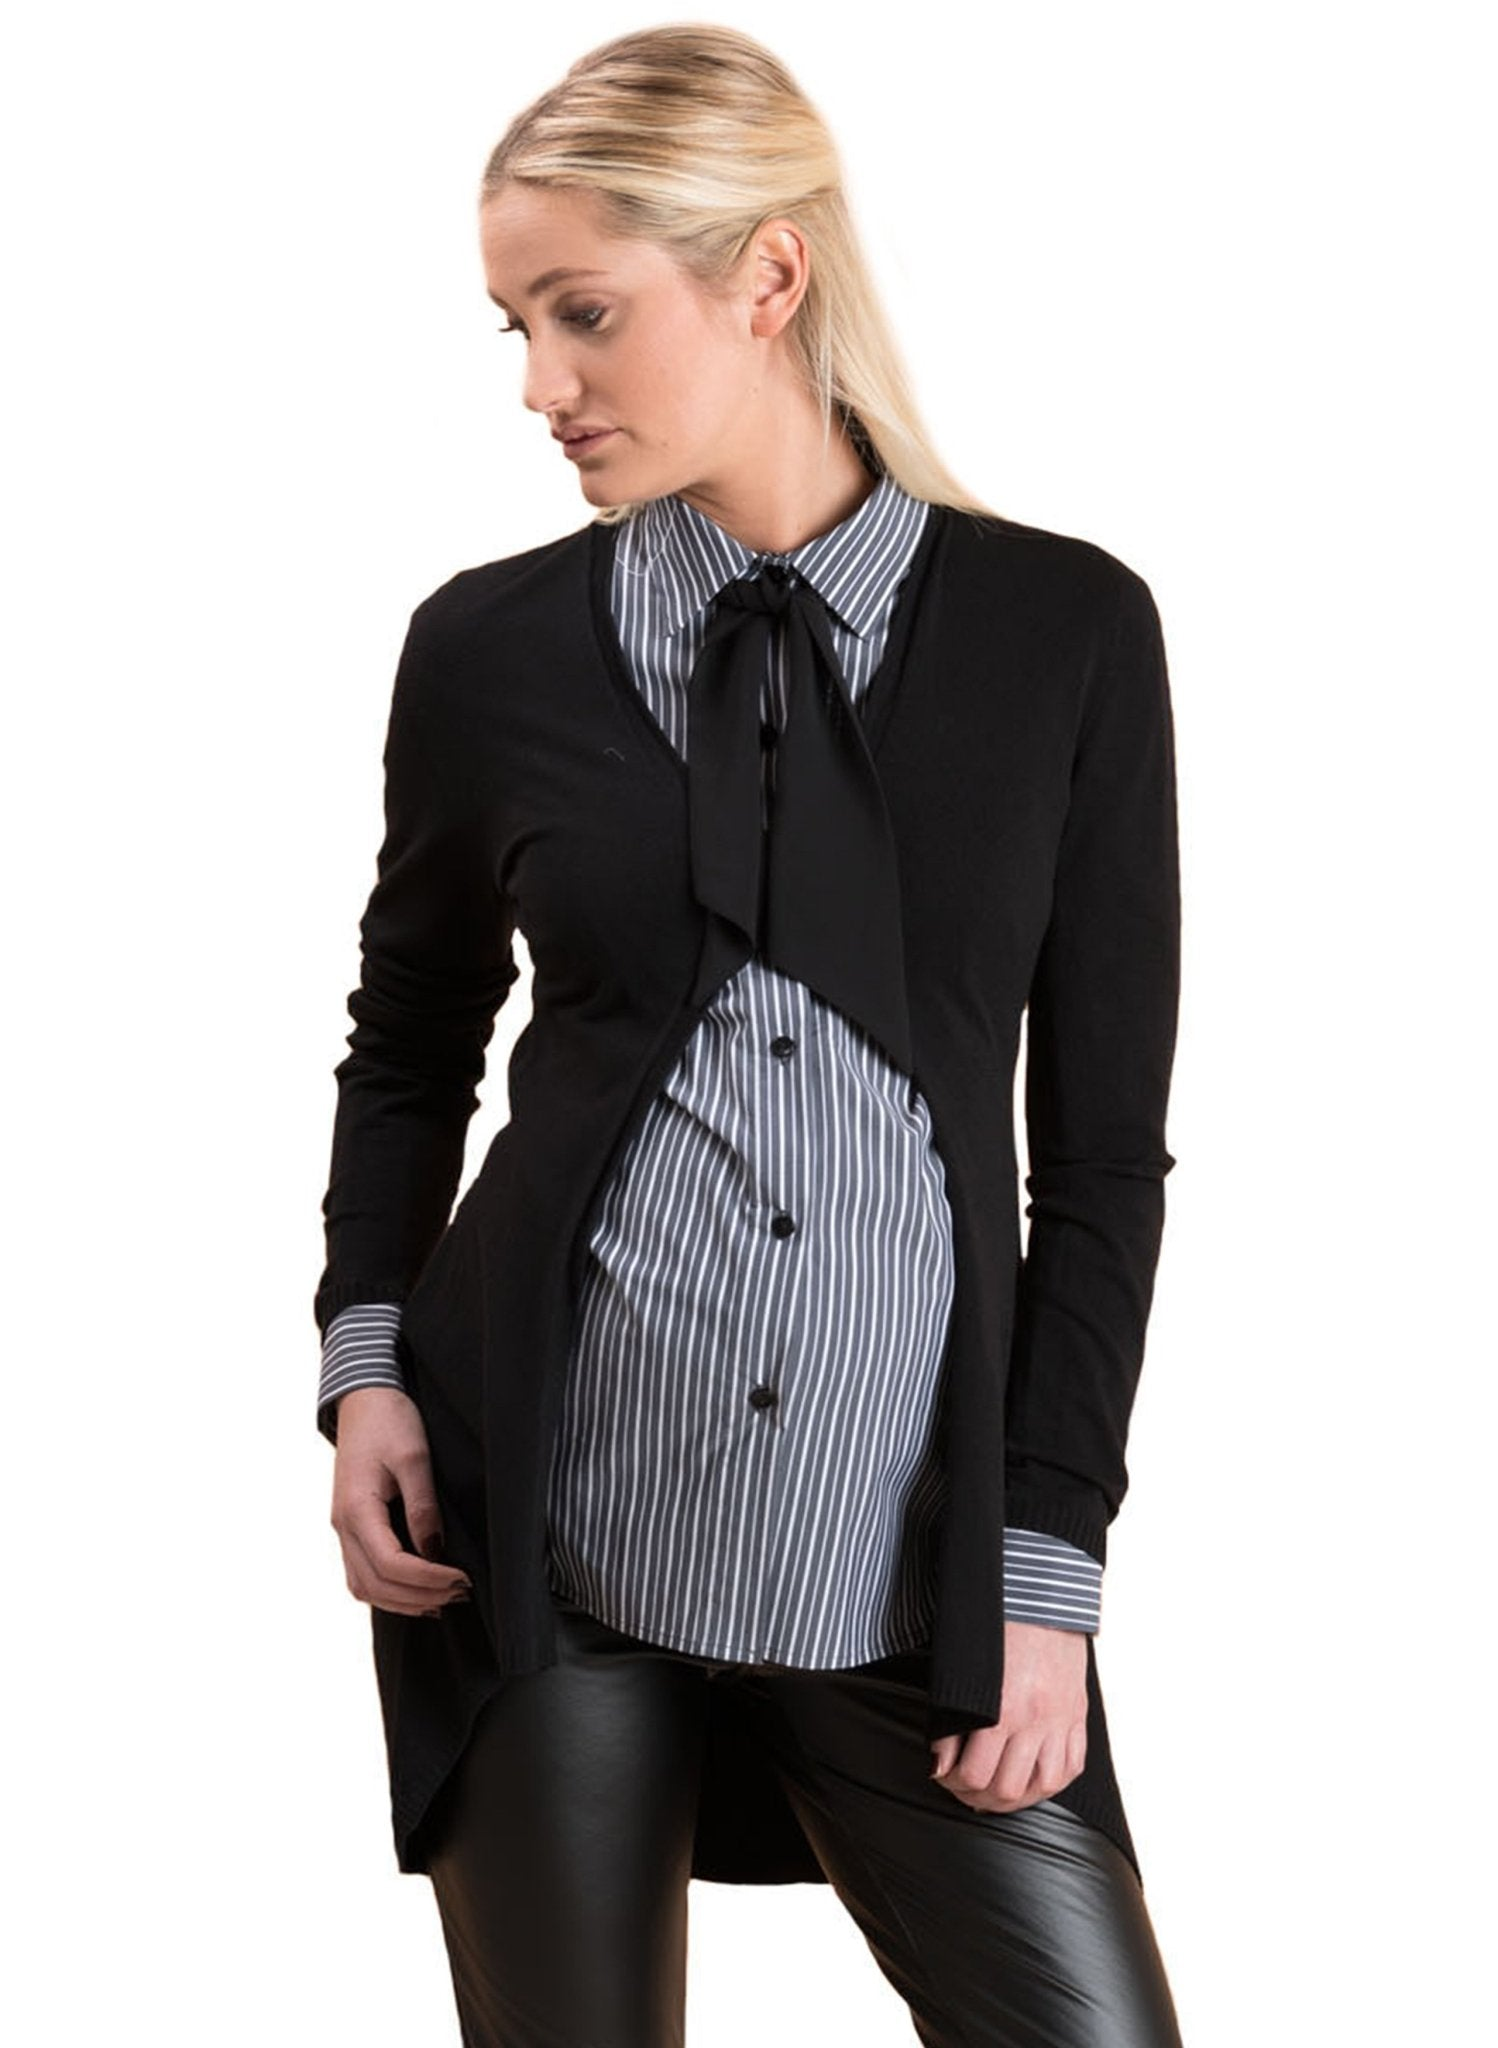 Classico Maternity Cardigan - Black - Mums and Bumps